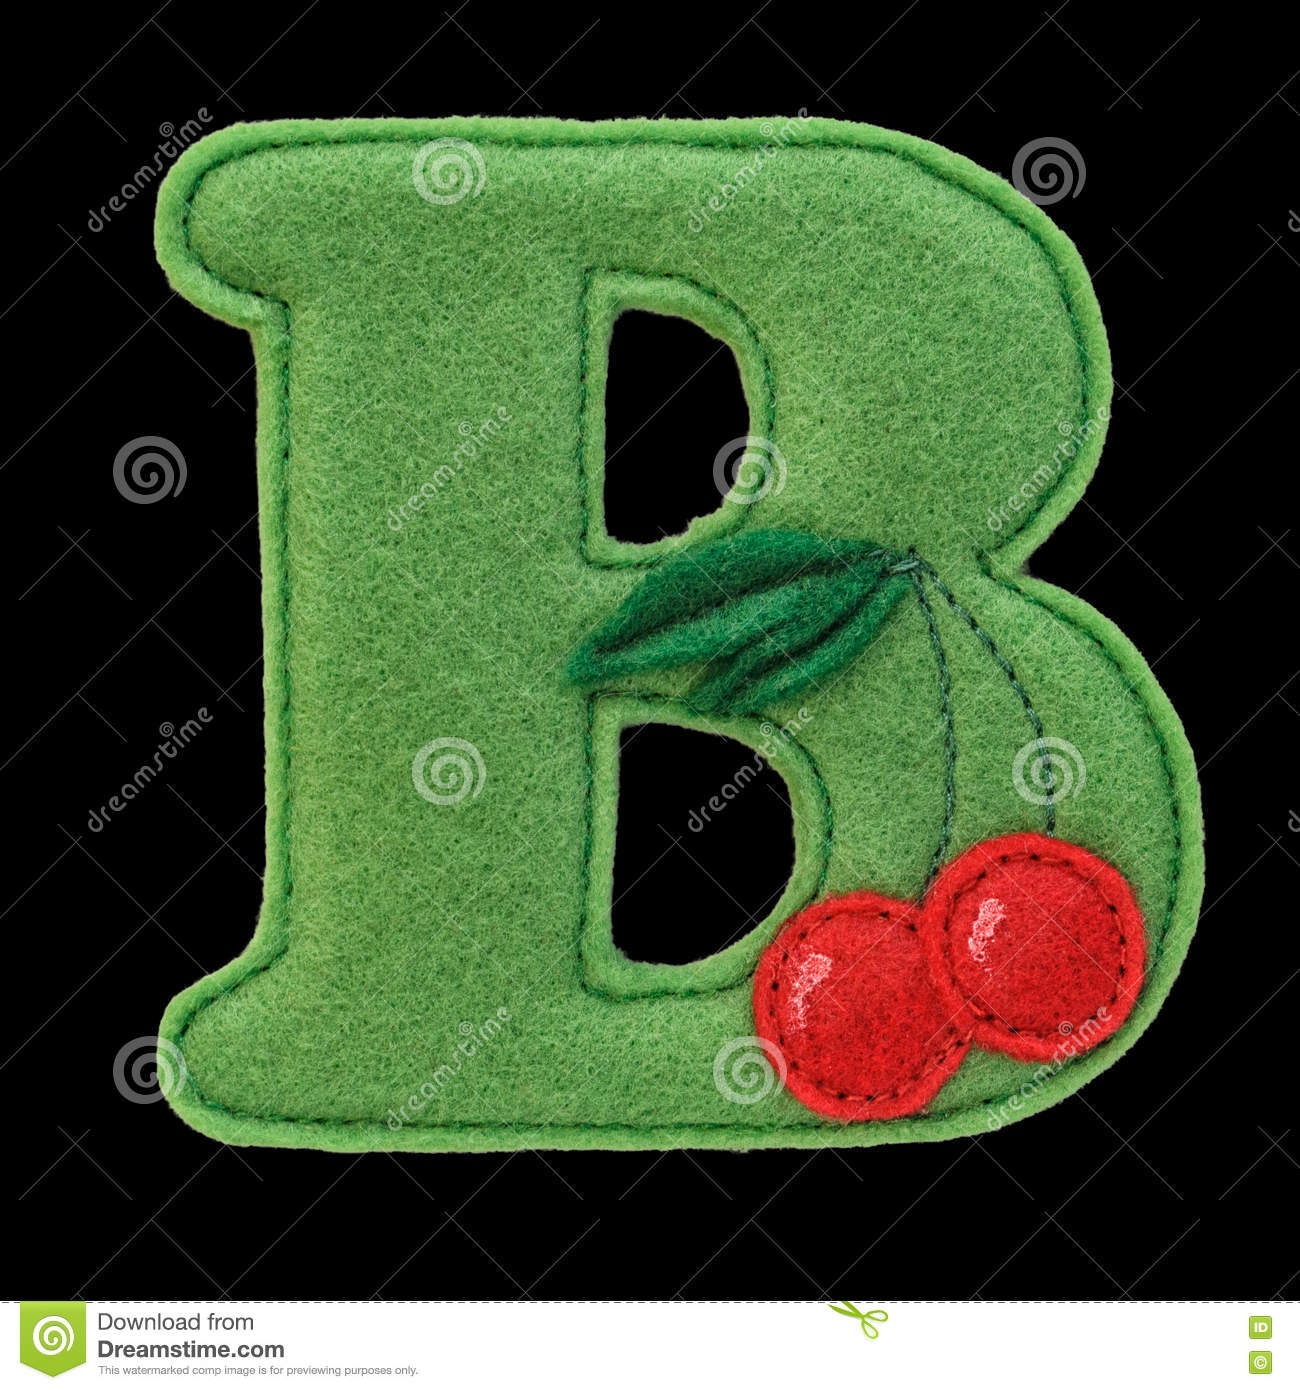 Image result for letter B cherry